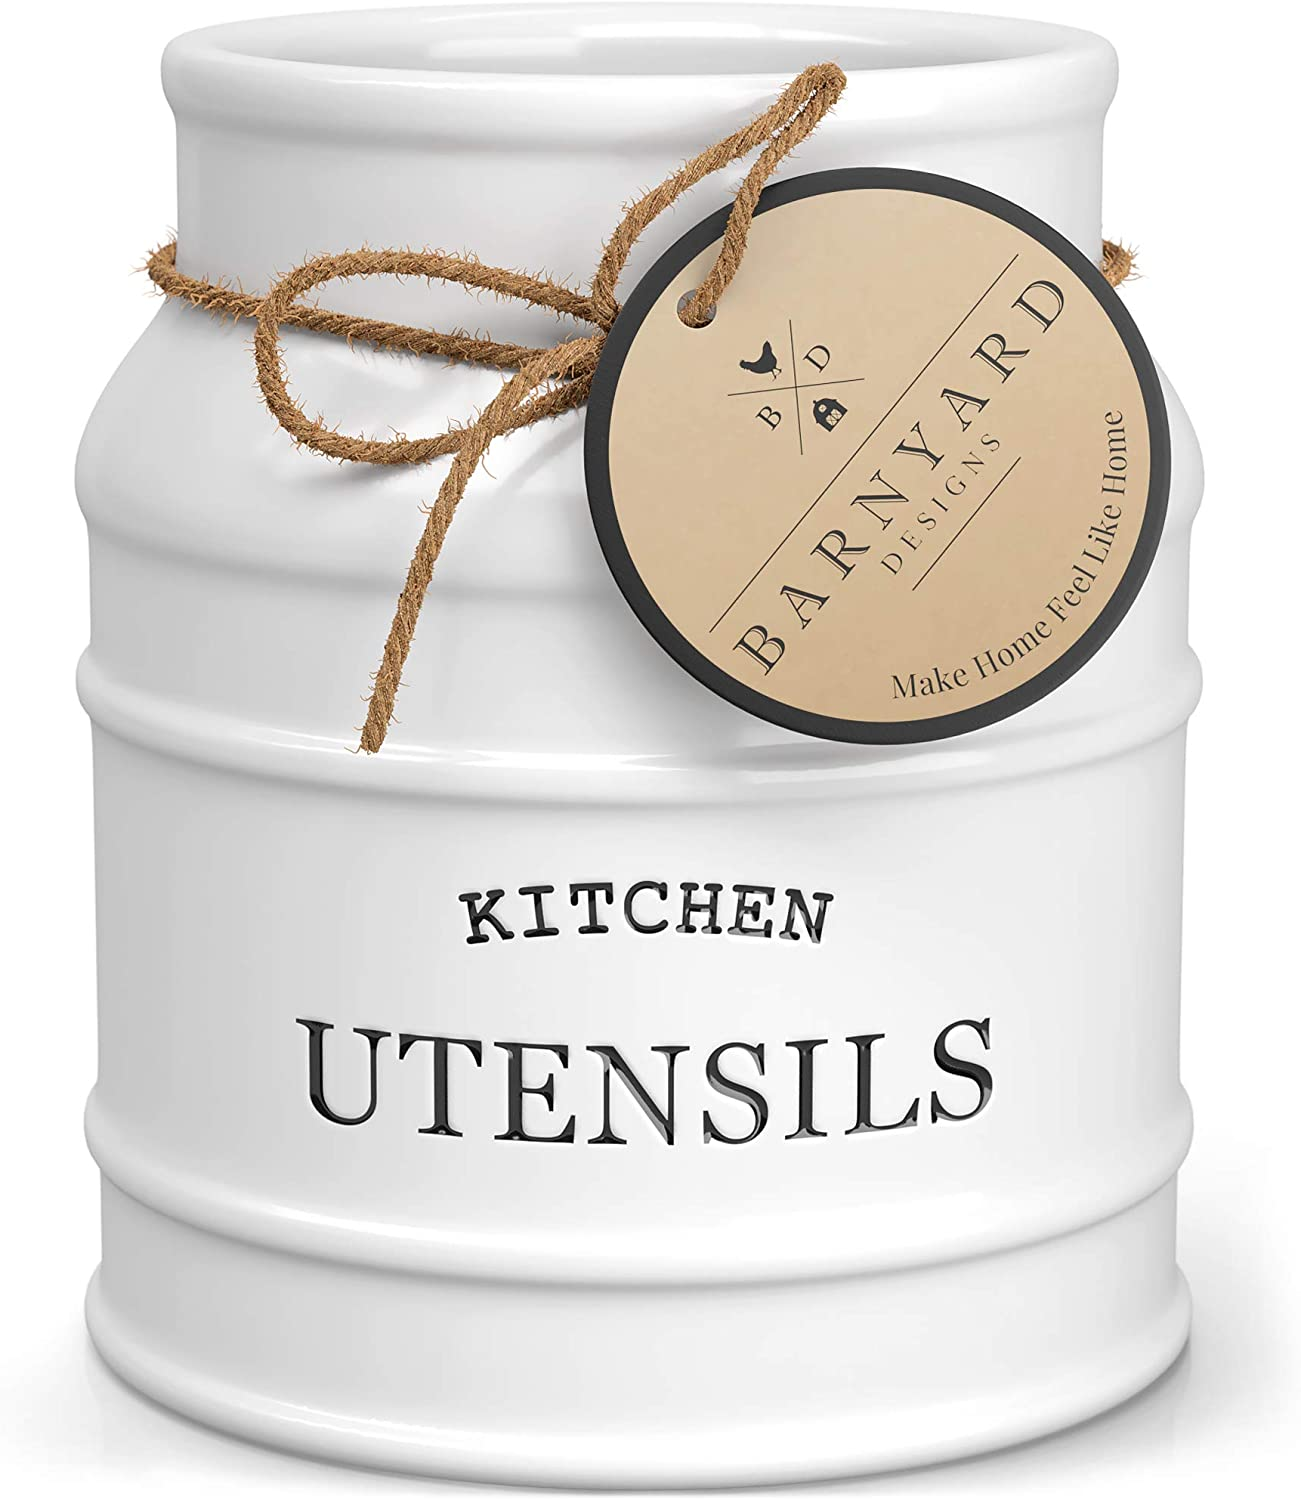 """Barnyard Designs Ceramic Utensil Crock Holder for Kitchen Counter, Rustic Farmhouse Countertop Decor, French Country Organizer for Cooking Utensils, Spatulas and Mixing Spoons, White, 6"""" x 6.75"""